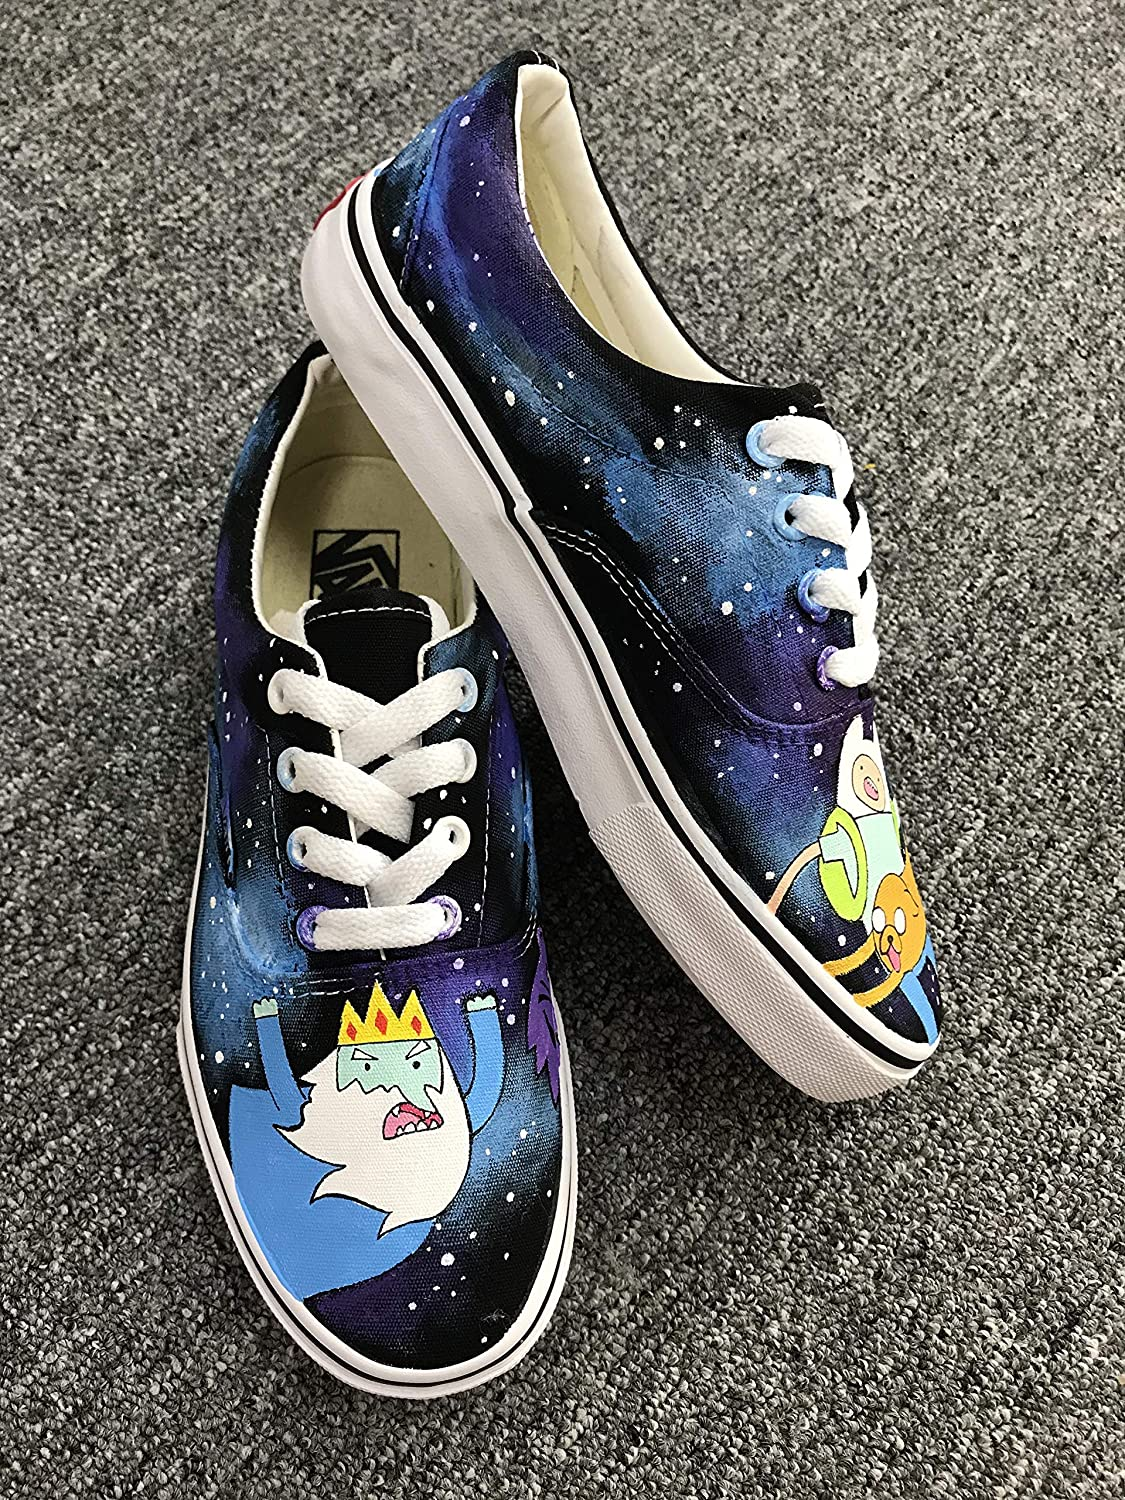 66dd3c5e8a33c5 Amazon.com  Anime Adventure Time Vans Custom Canvas Shoes Handpainted Low  Tops Shoes Christmas Gifts  Handmade